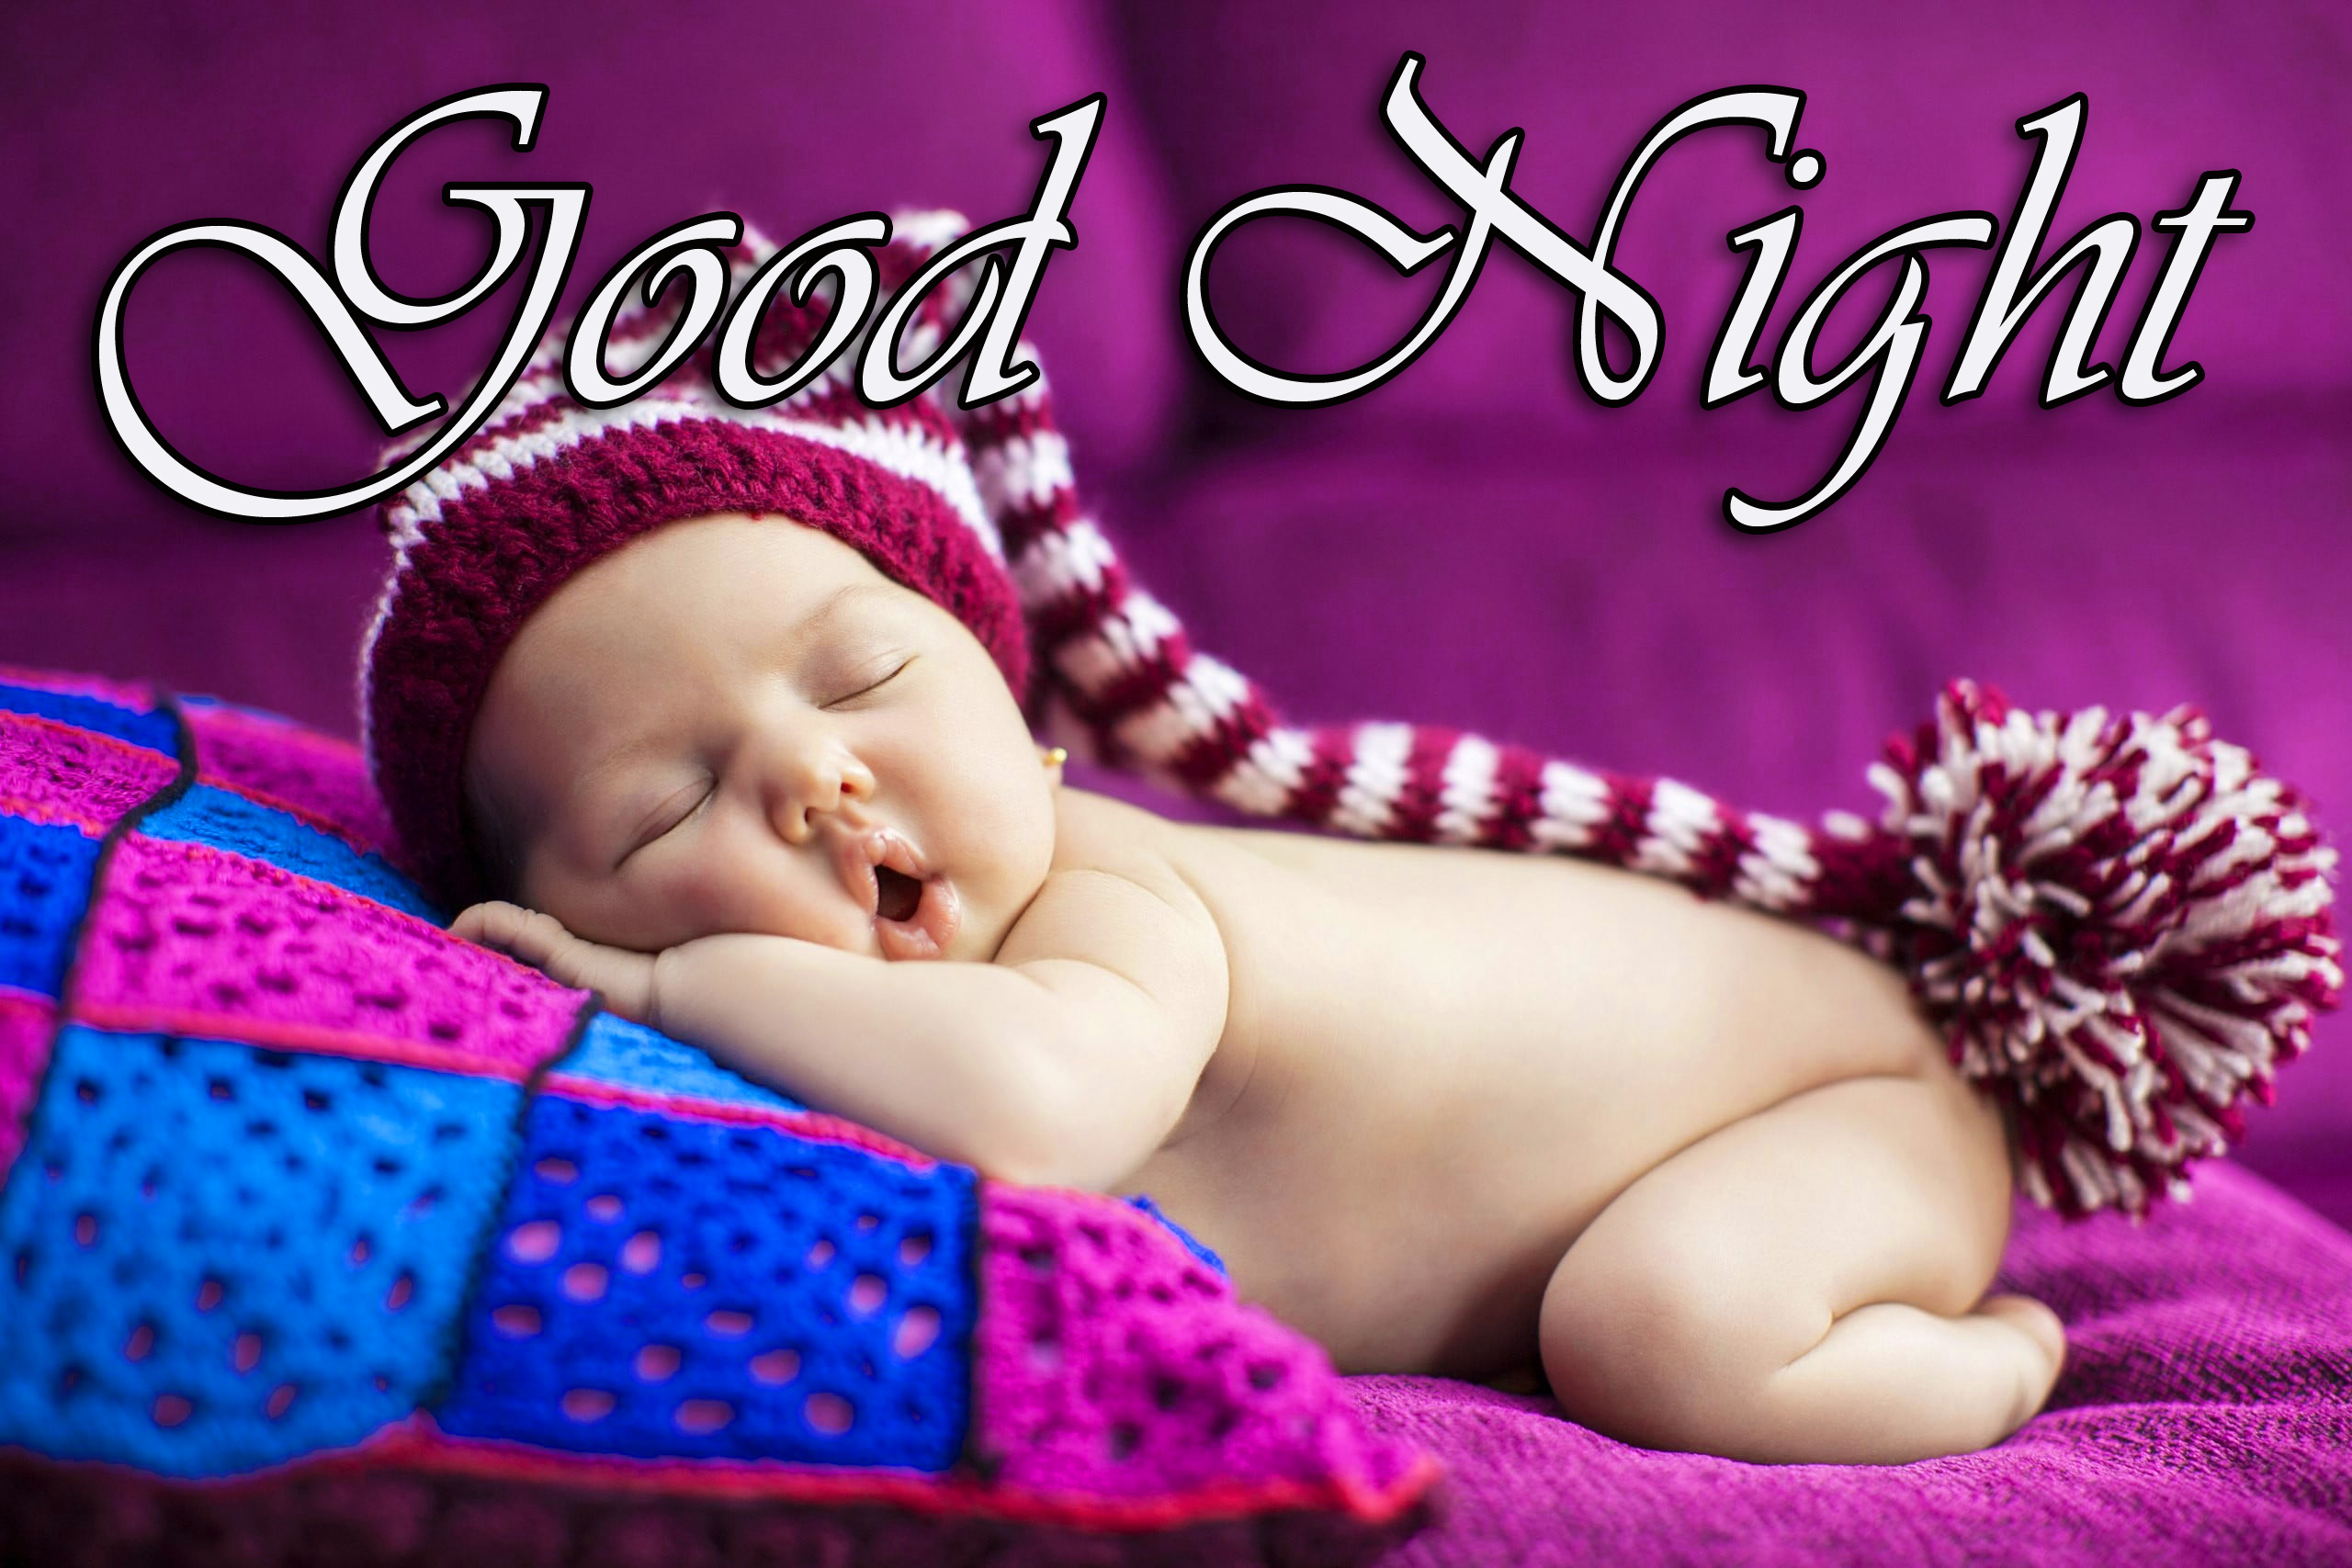 Good Night Pics Wallpaper Free Download for Facebook